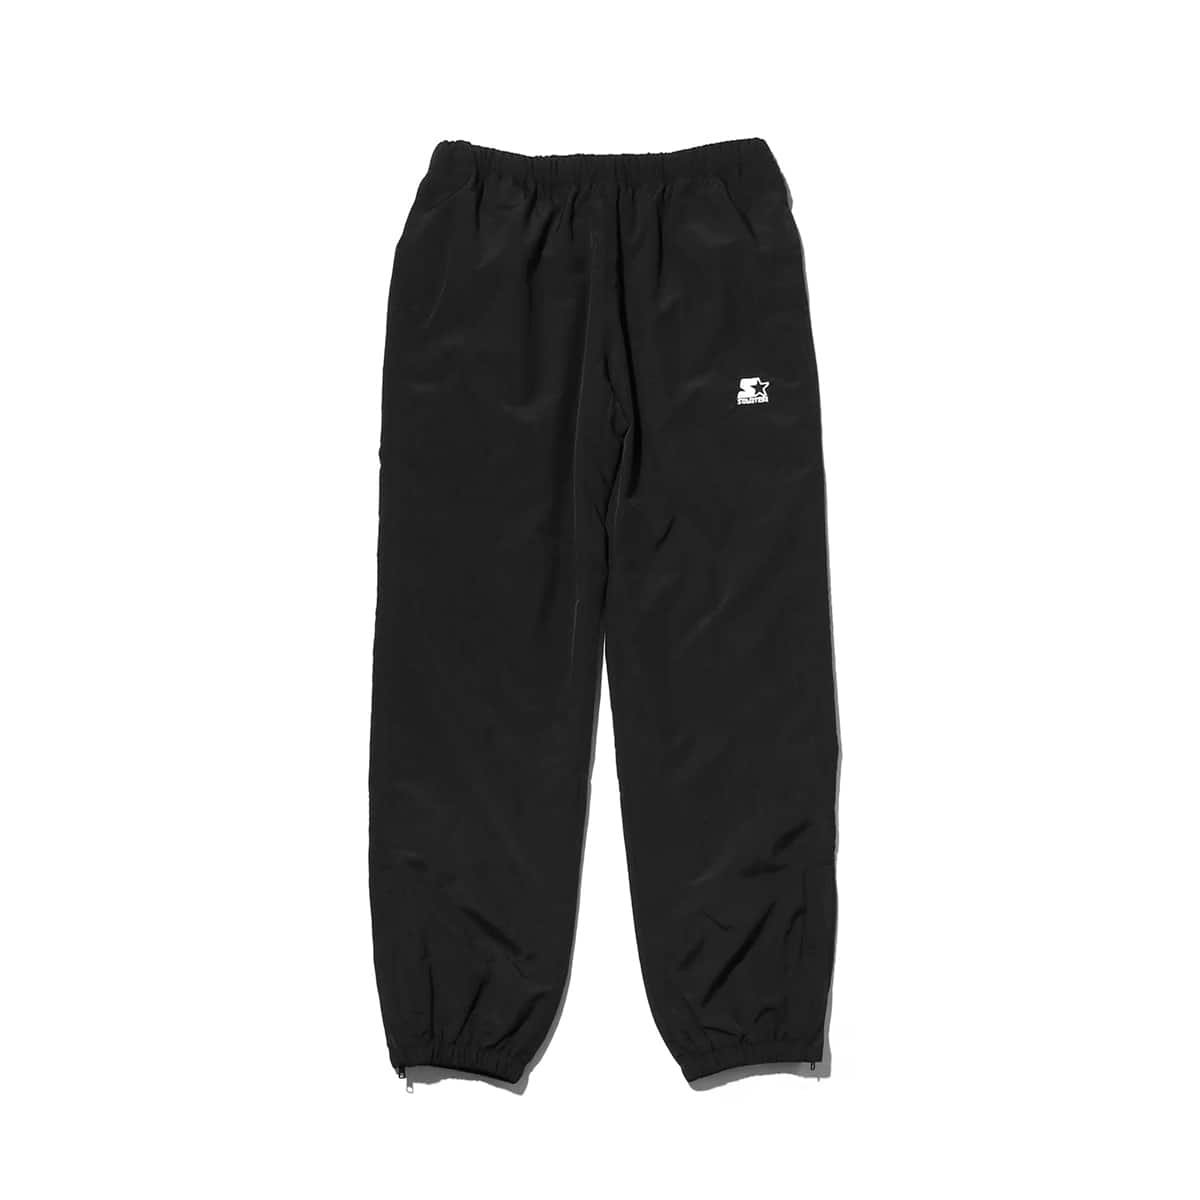 STARTER BLACK LABEL x ATMOS LAB WARM UP PANTS  black_photo_large